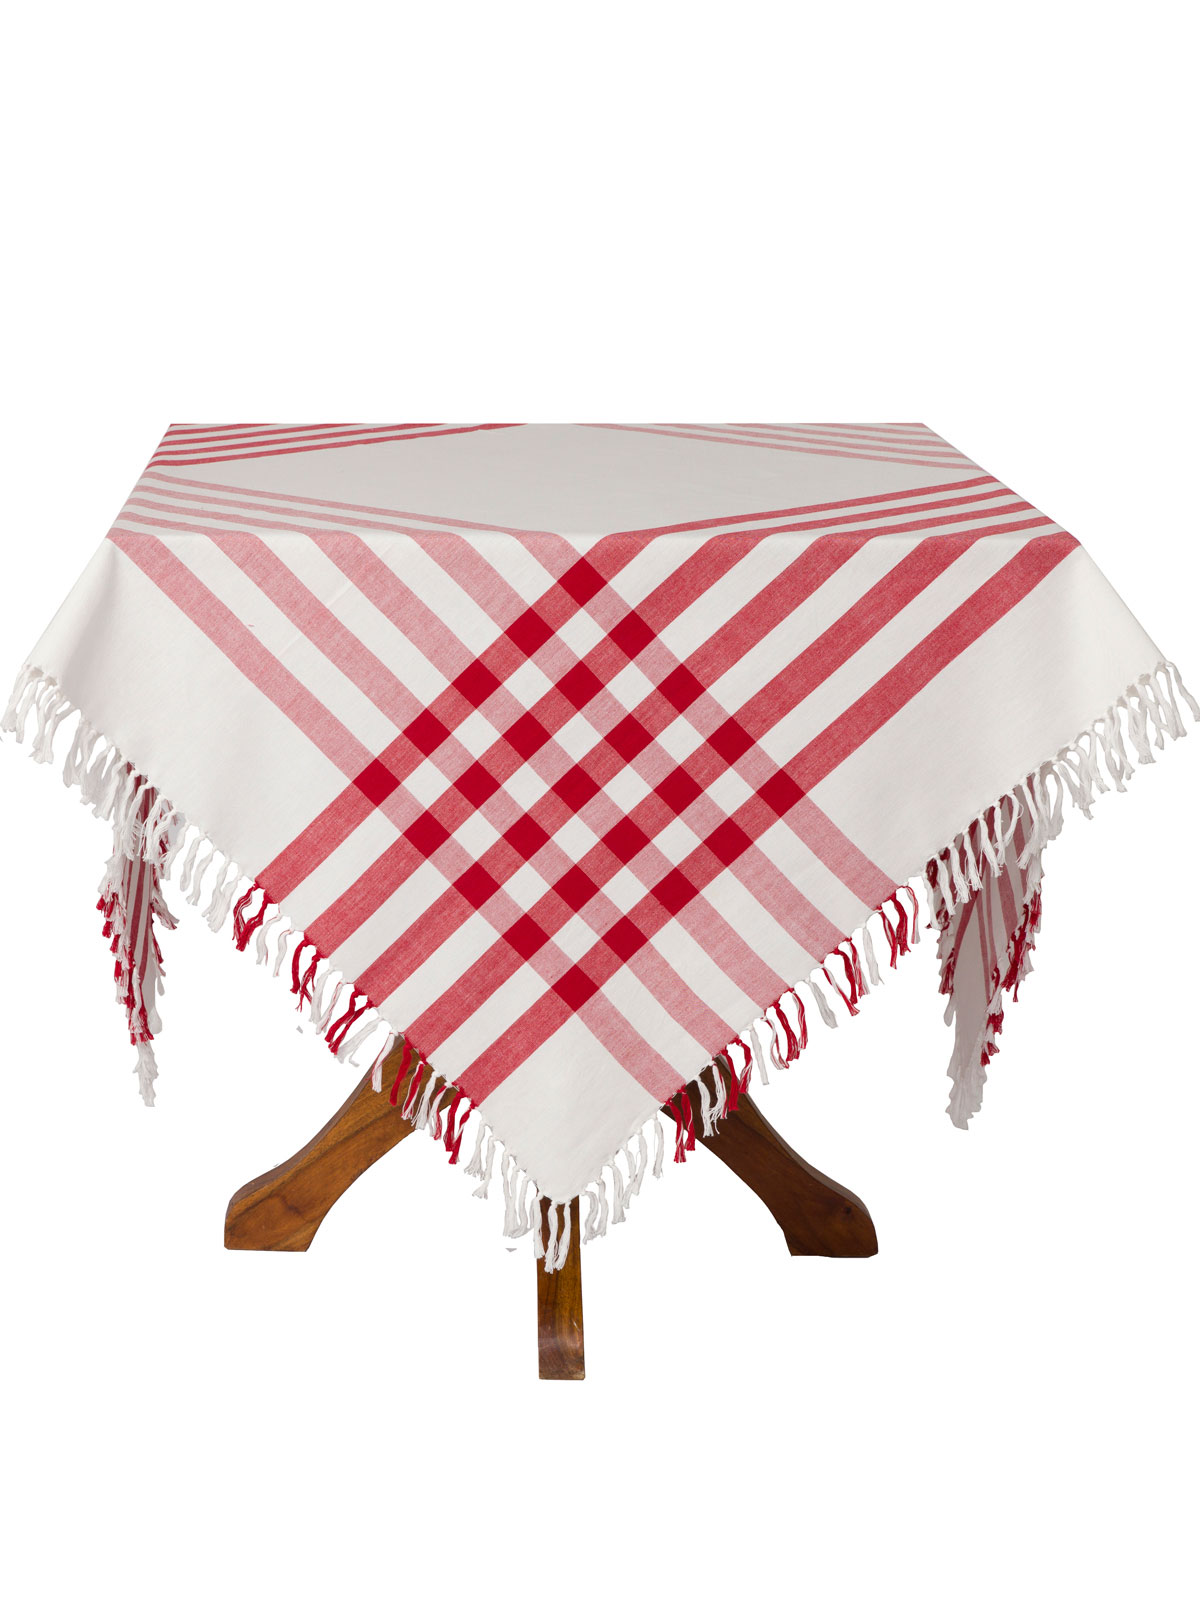 kitchen cotton yarn chairs for heavy people happy picnic gingham tablecloth - red | attic sale, linens ...